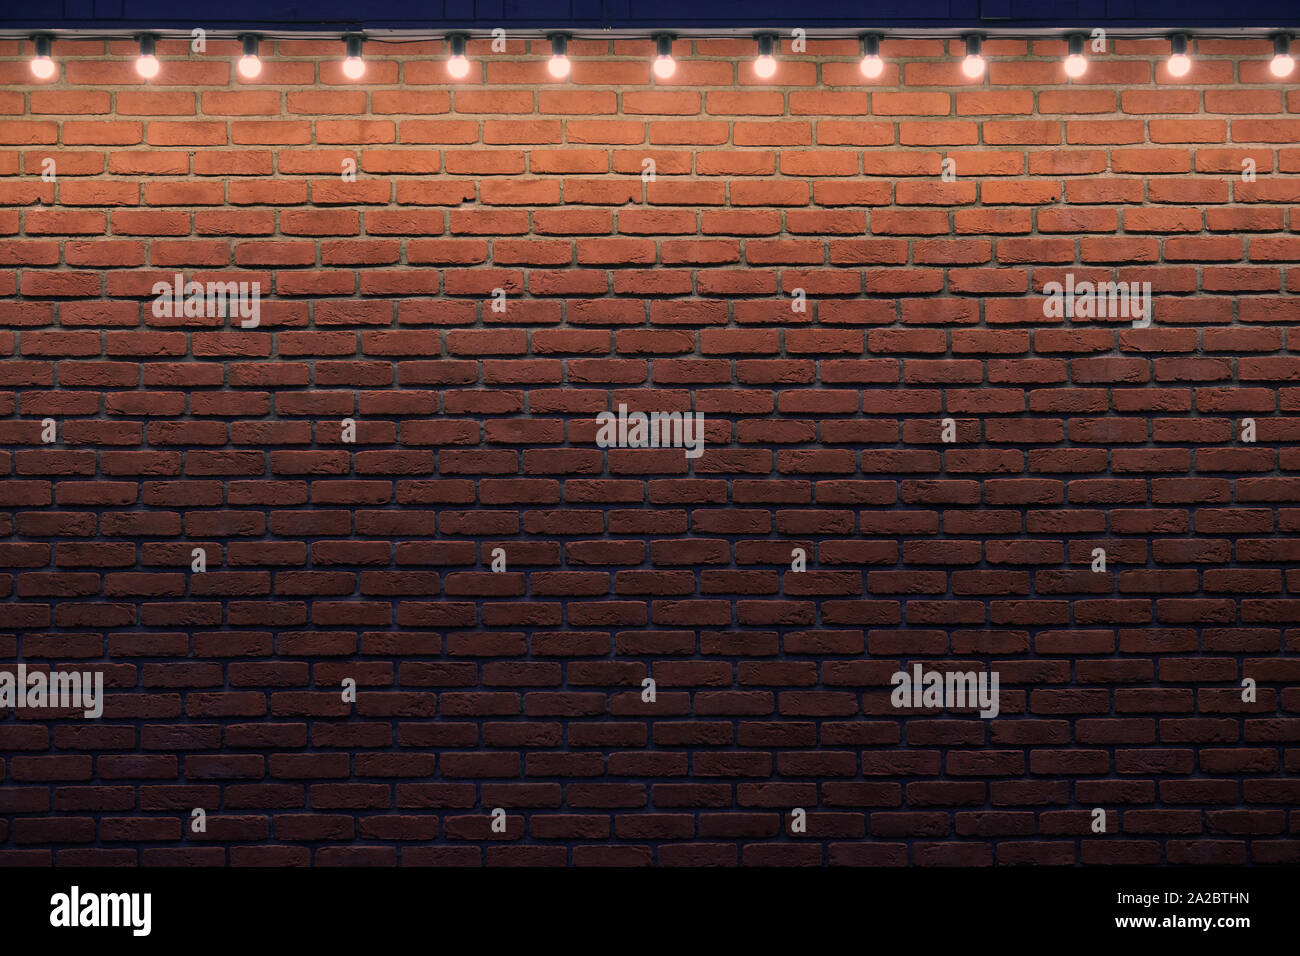 An orange brick wall with small light bulbs. Gradient stone background with low light and copy space. Place for advert. Stock Photo